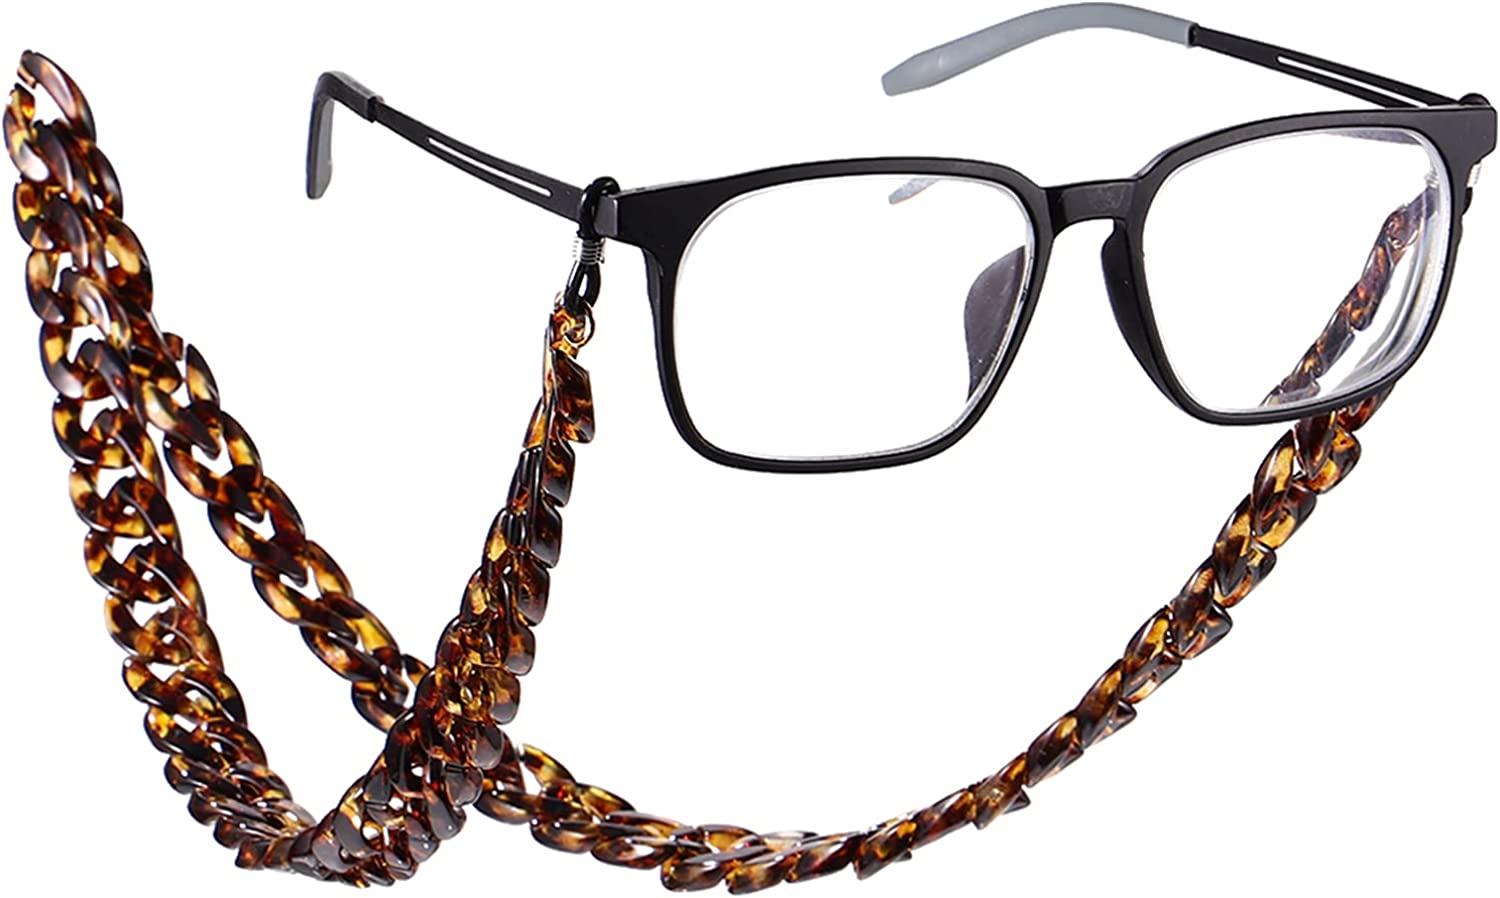 VALICLUD VALICLUD Anti- slip Spectacles Chain Universal Eyeglasses Cord Sunglasses Rope Exaggerated Neck Cord (Brown)